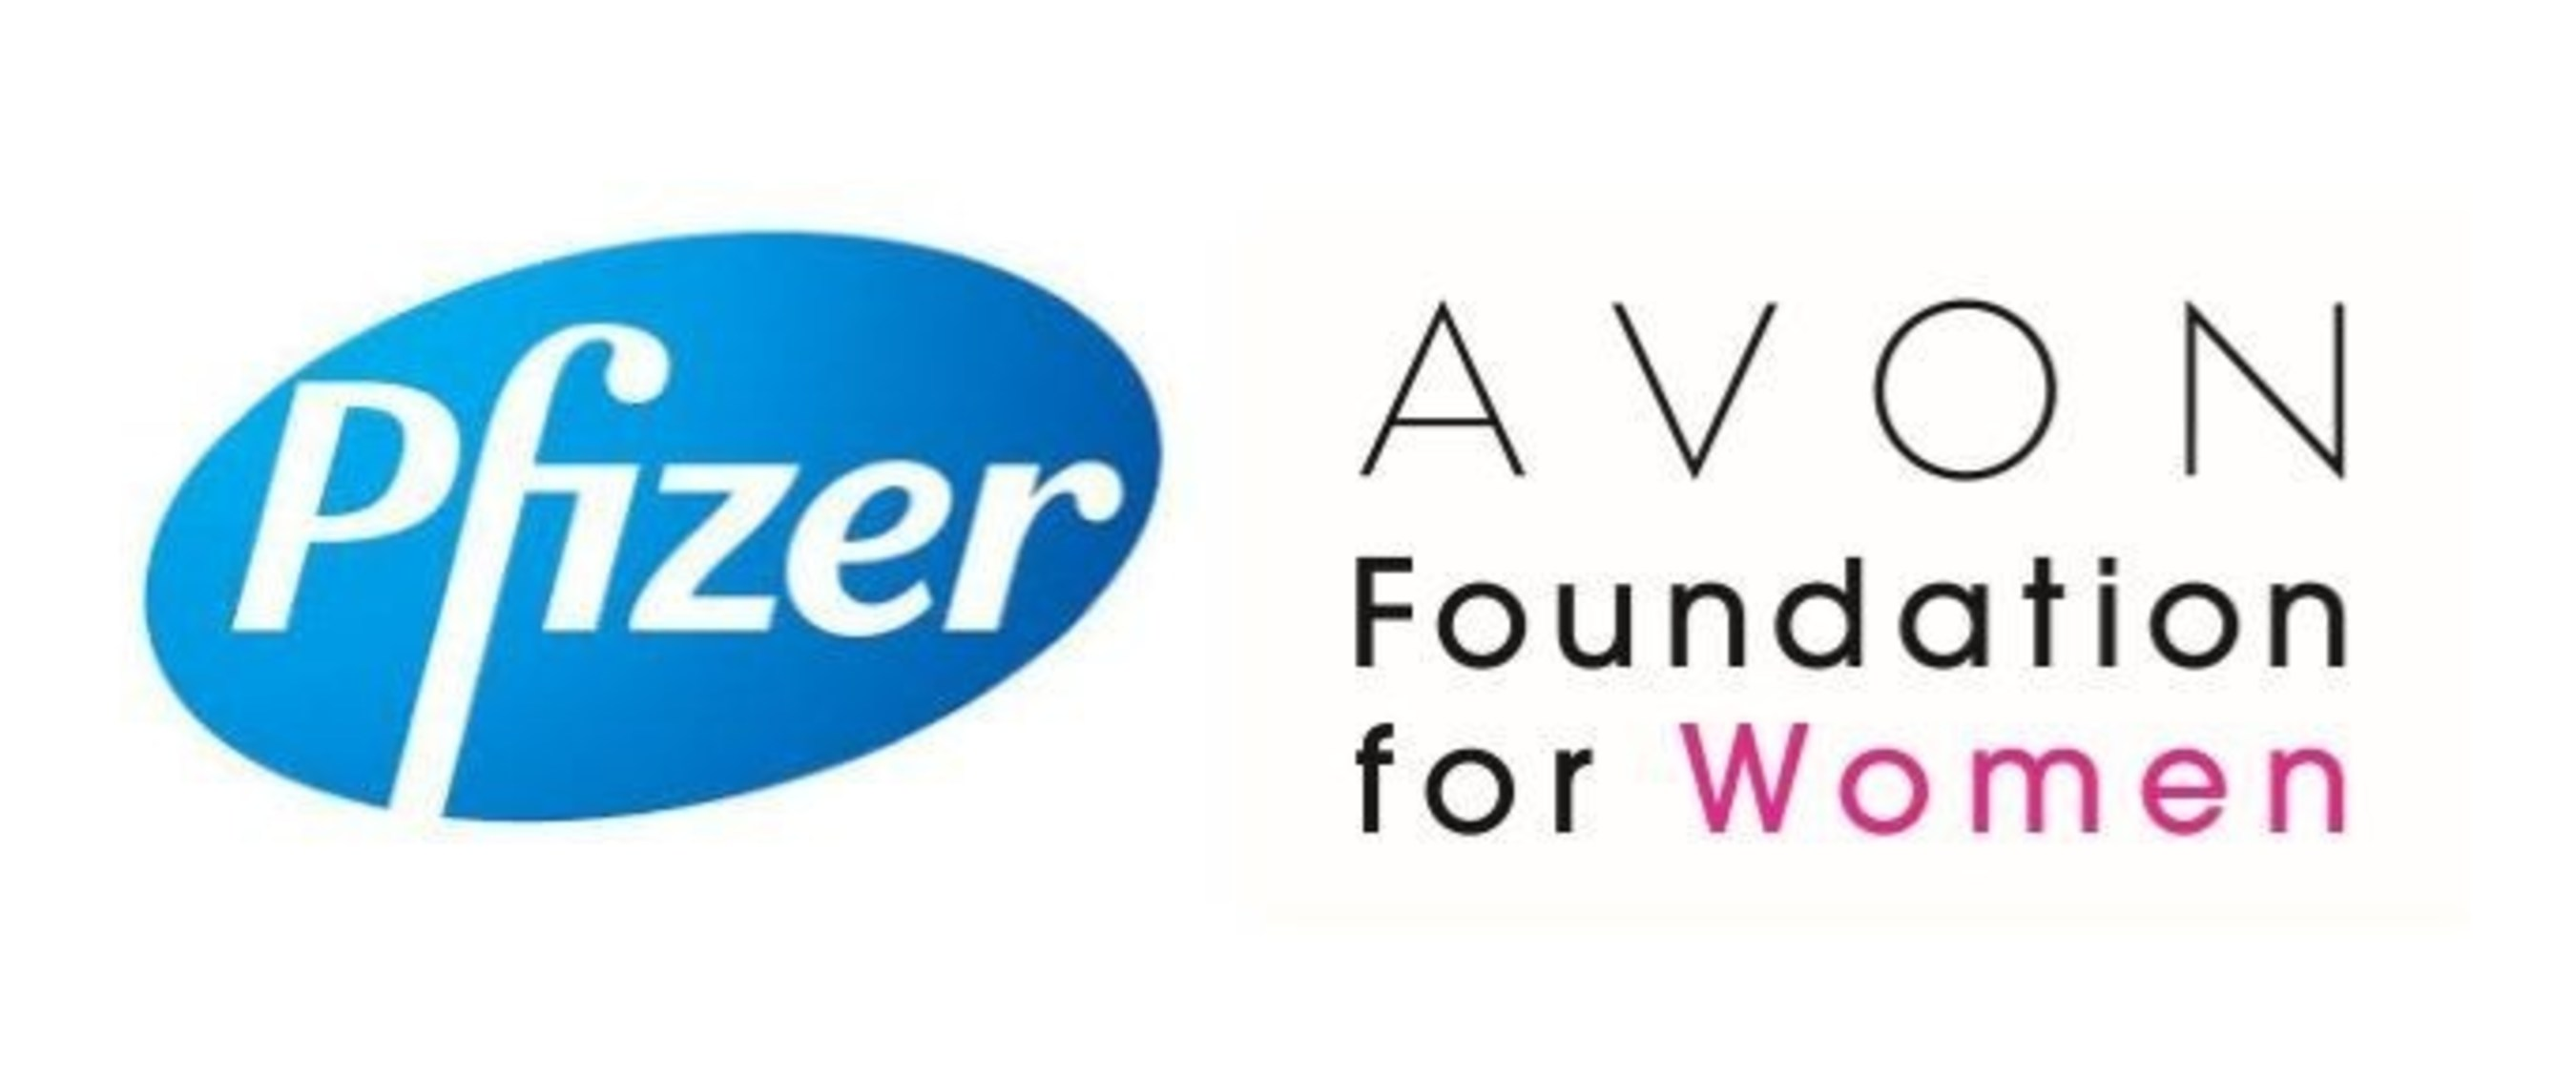 Pfizer And The Avon Foundation For Women Award 23 Grants Totaling 1 Million In Funding To Support Patients Living With Metastatic Breast Cancer